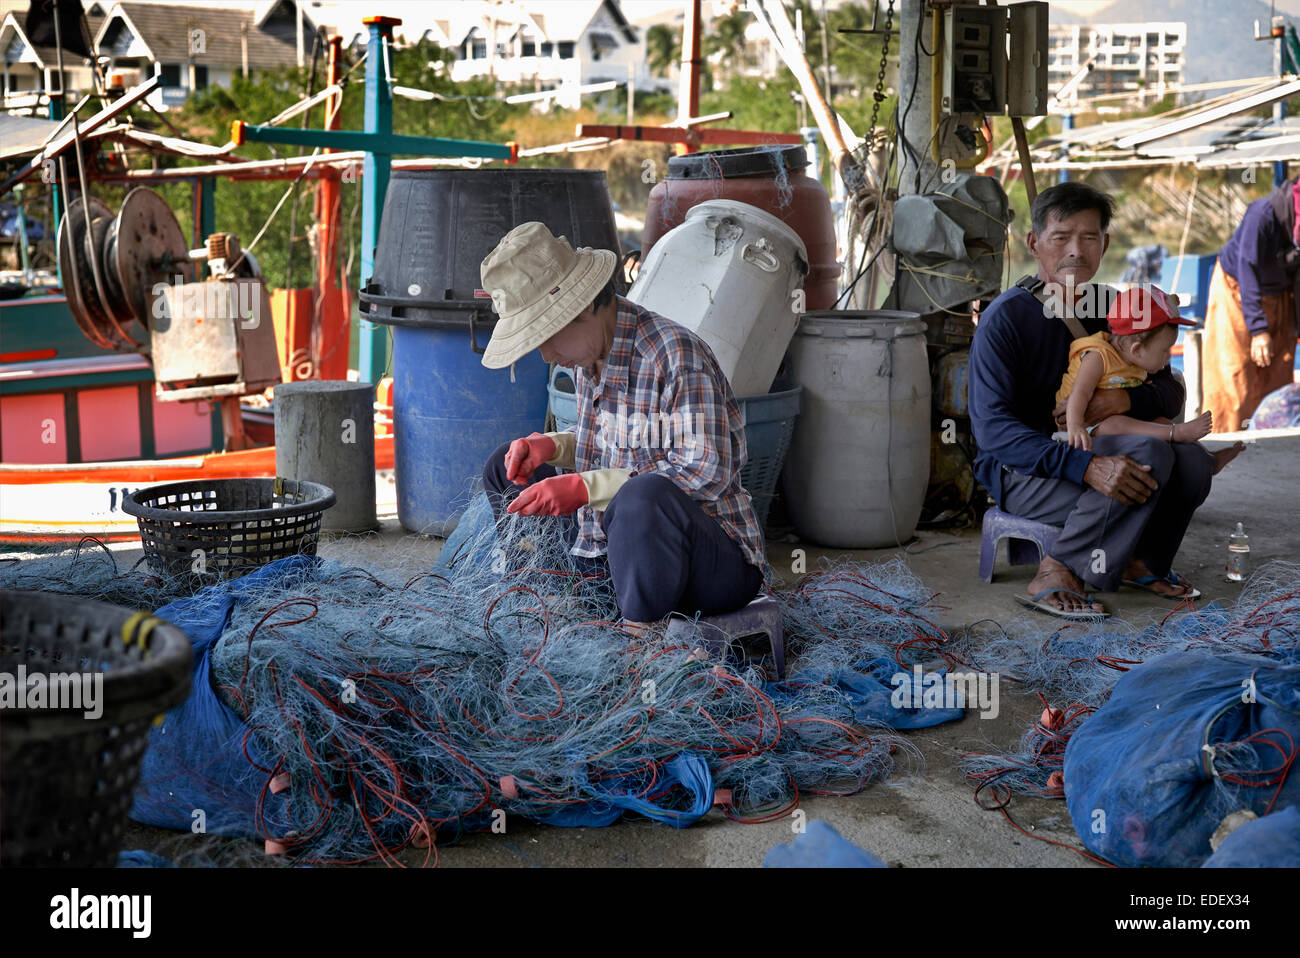 Role reversal with man caring for baby whilst woman tends the fishing nets. Thailand S. E. Asia. - Stock Image